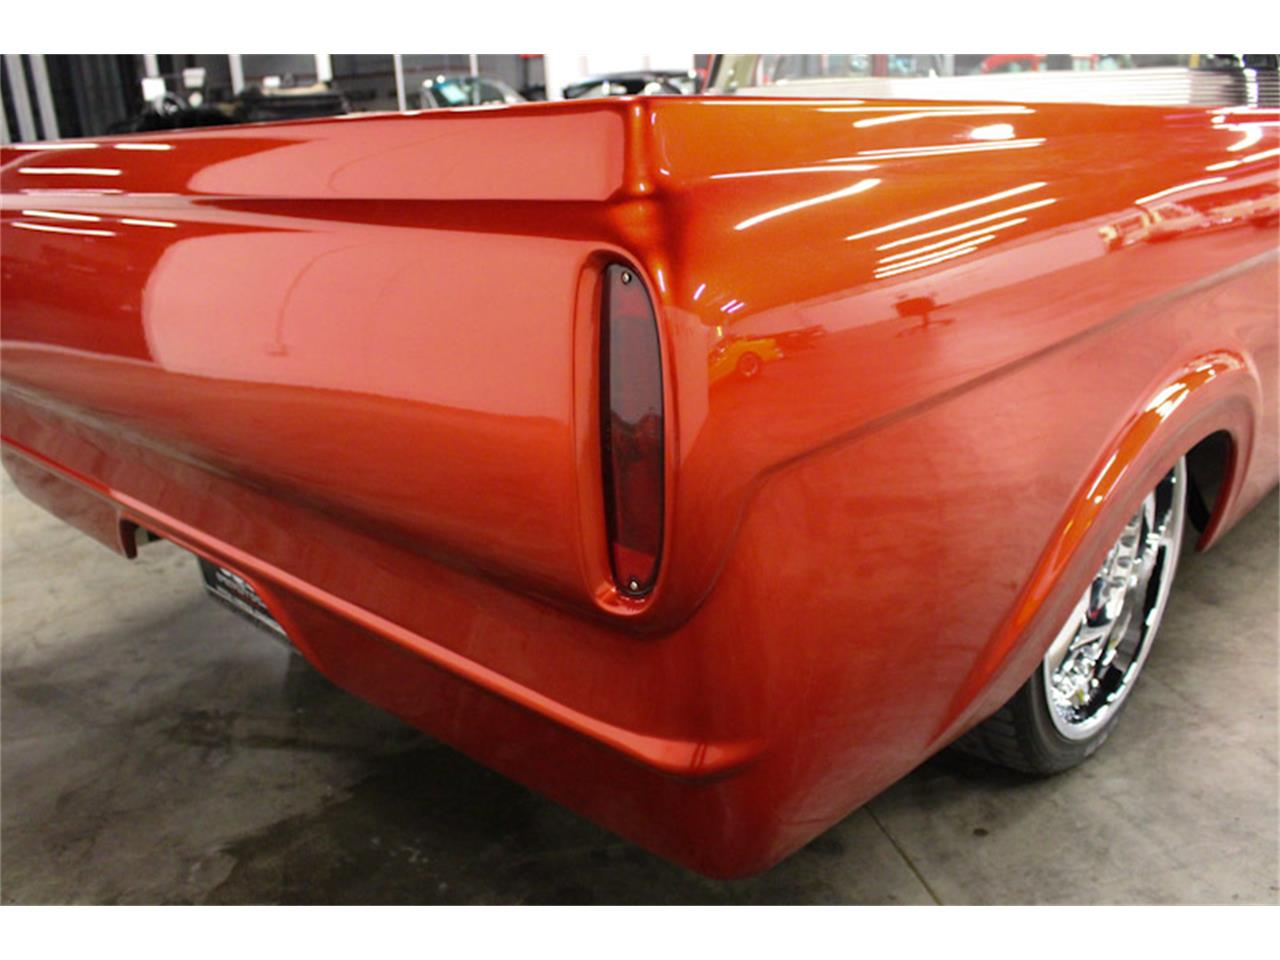 1962 Ford F100 for sale in Fairfield, CA – photo 36